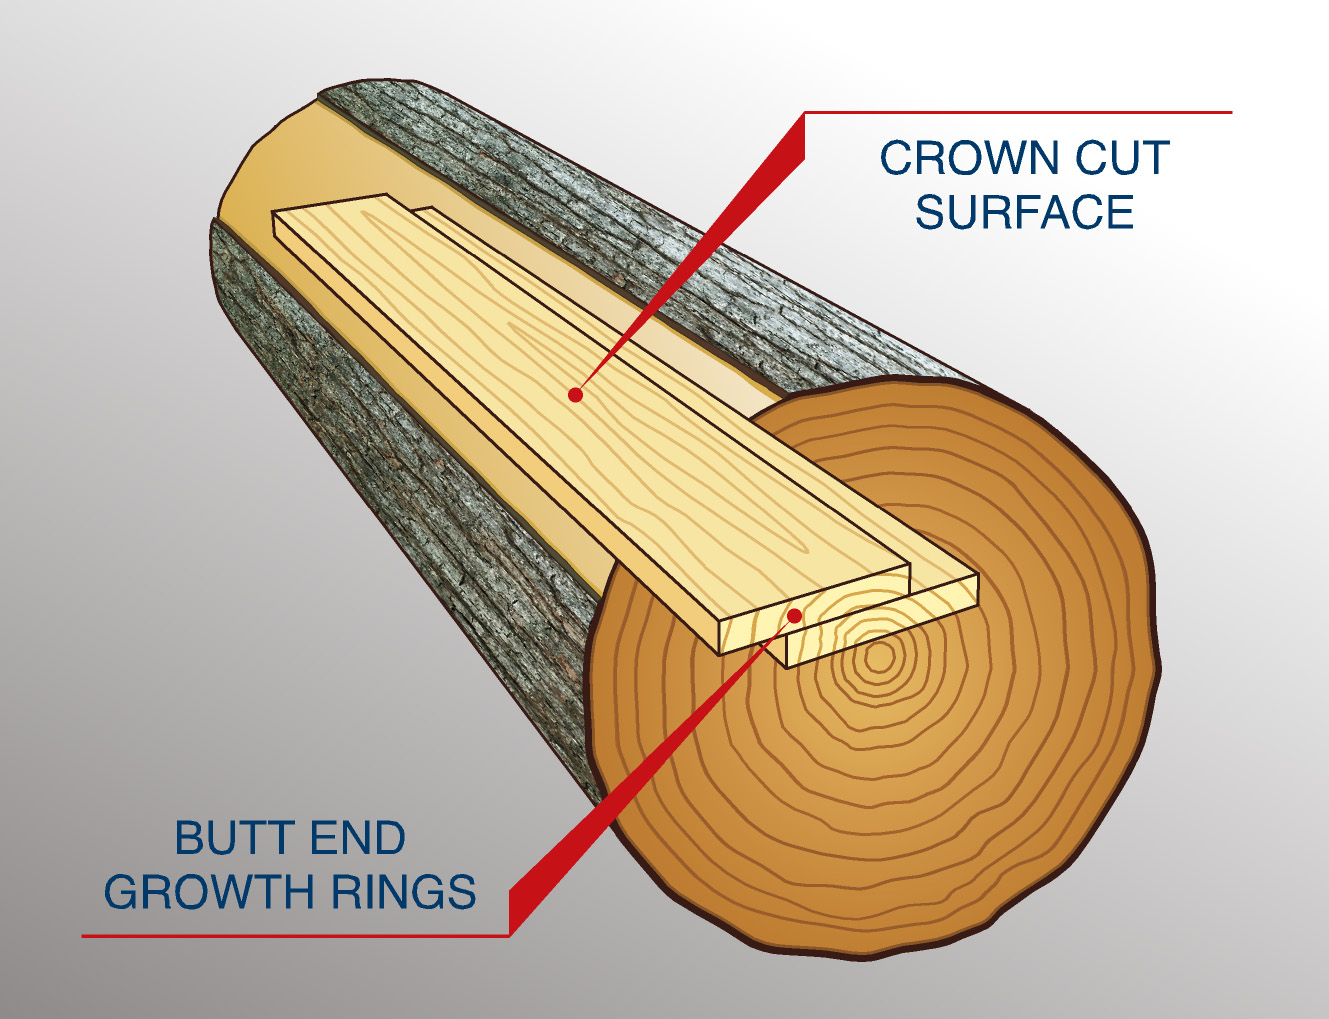 Crown cut surface